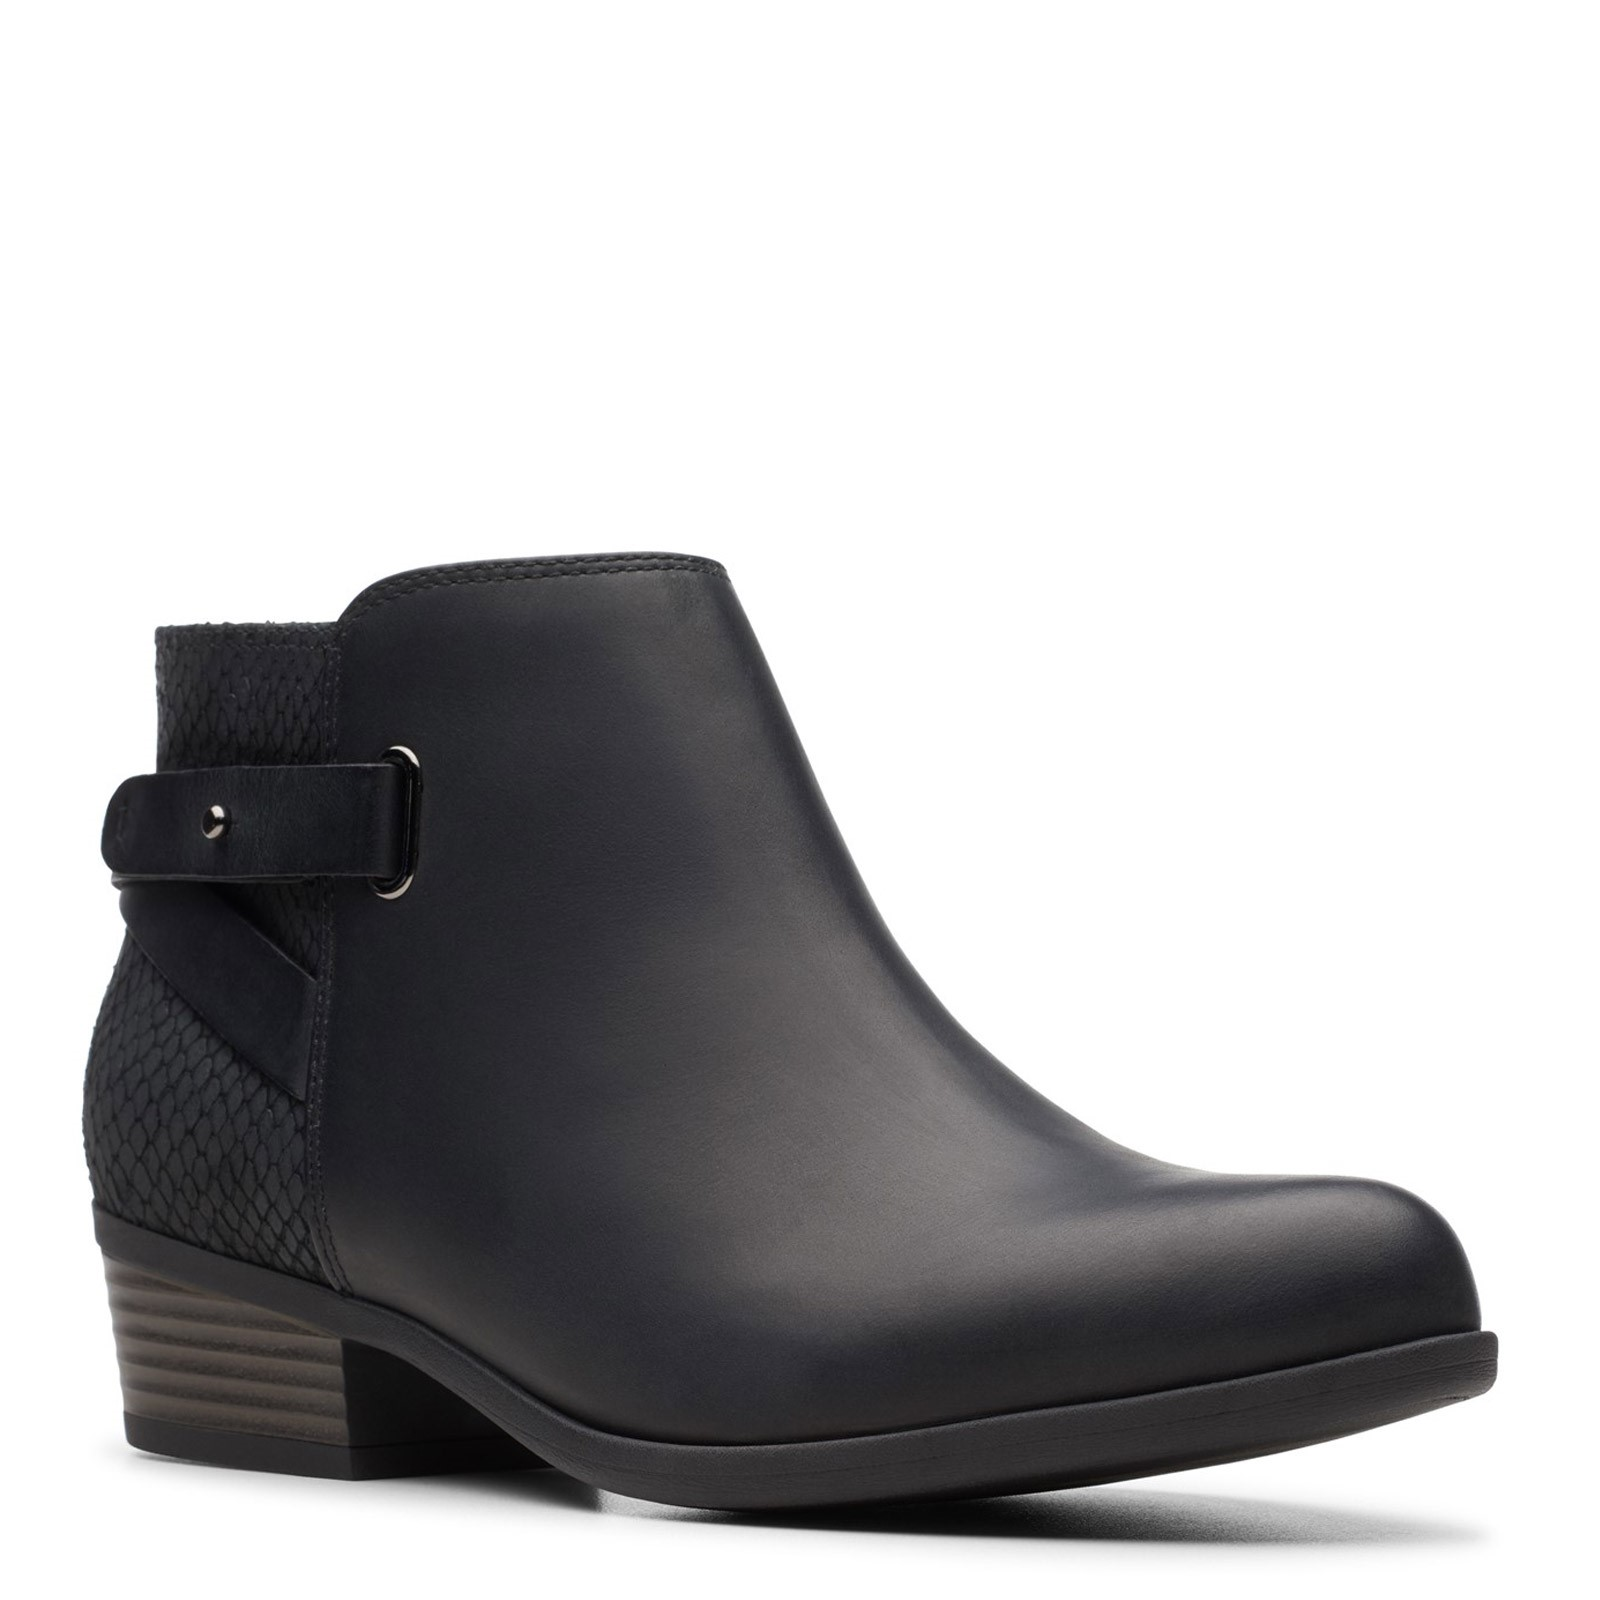 Women's Clarks, Addiy Gladys Ankle Boots